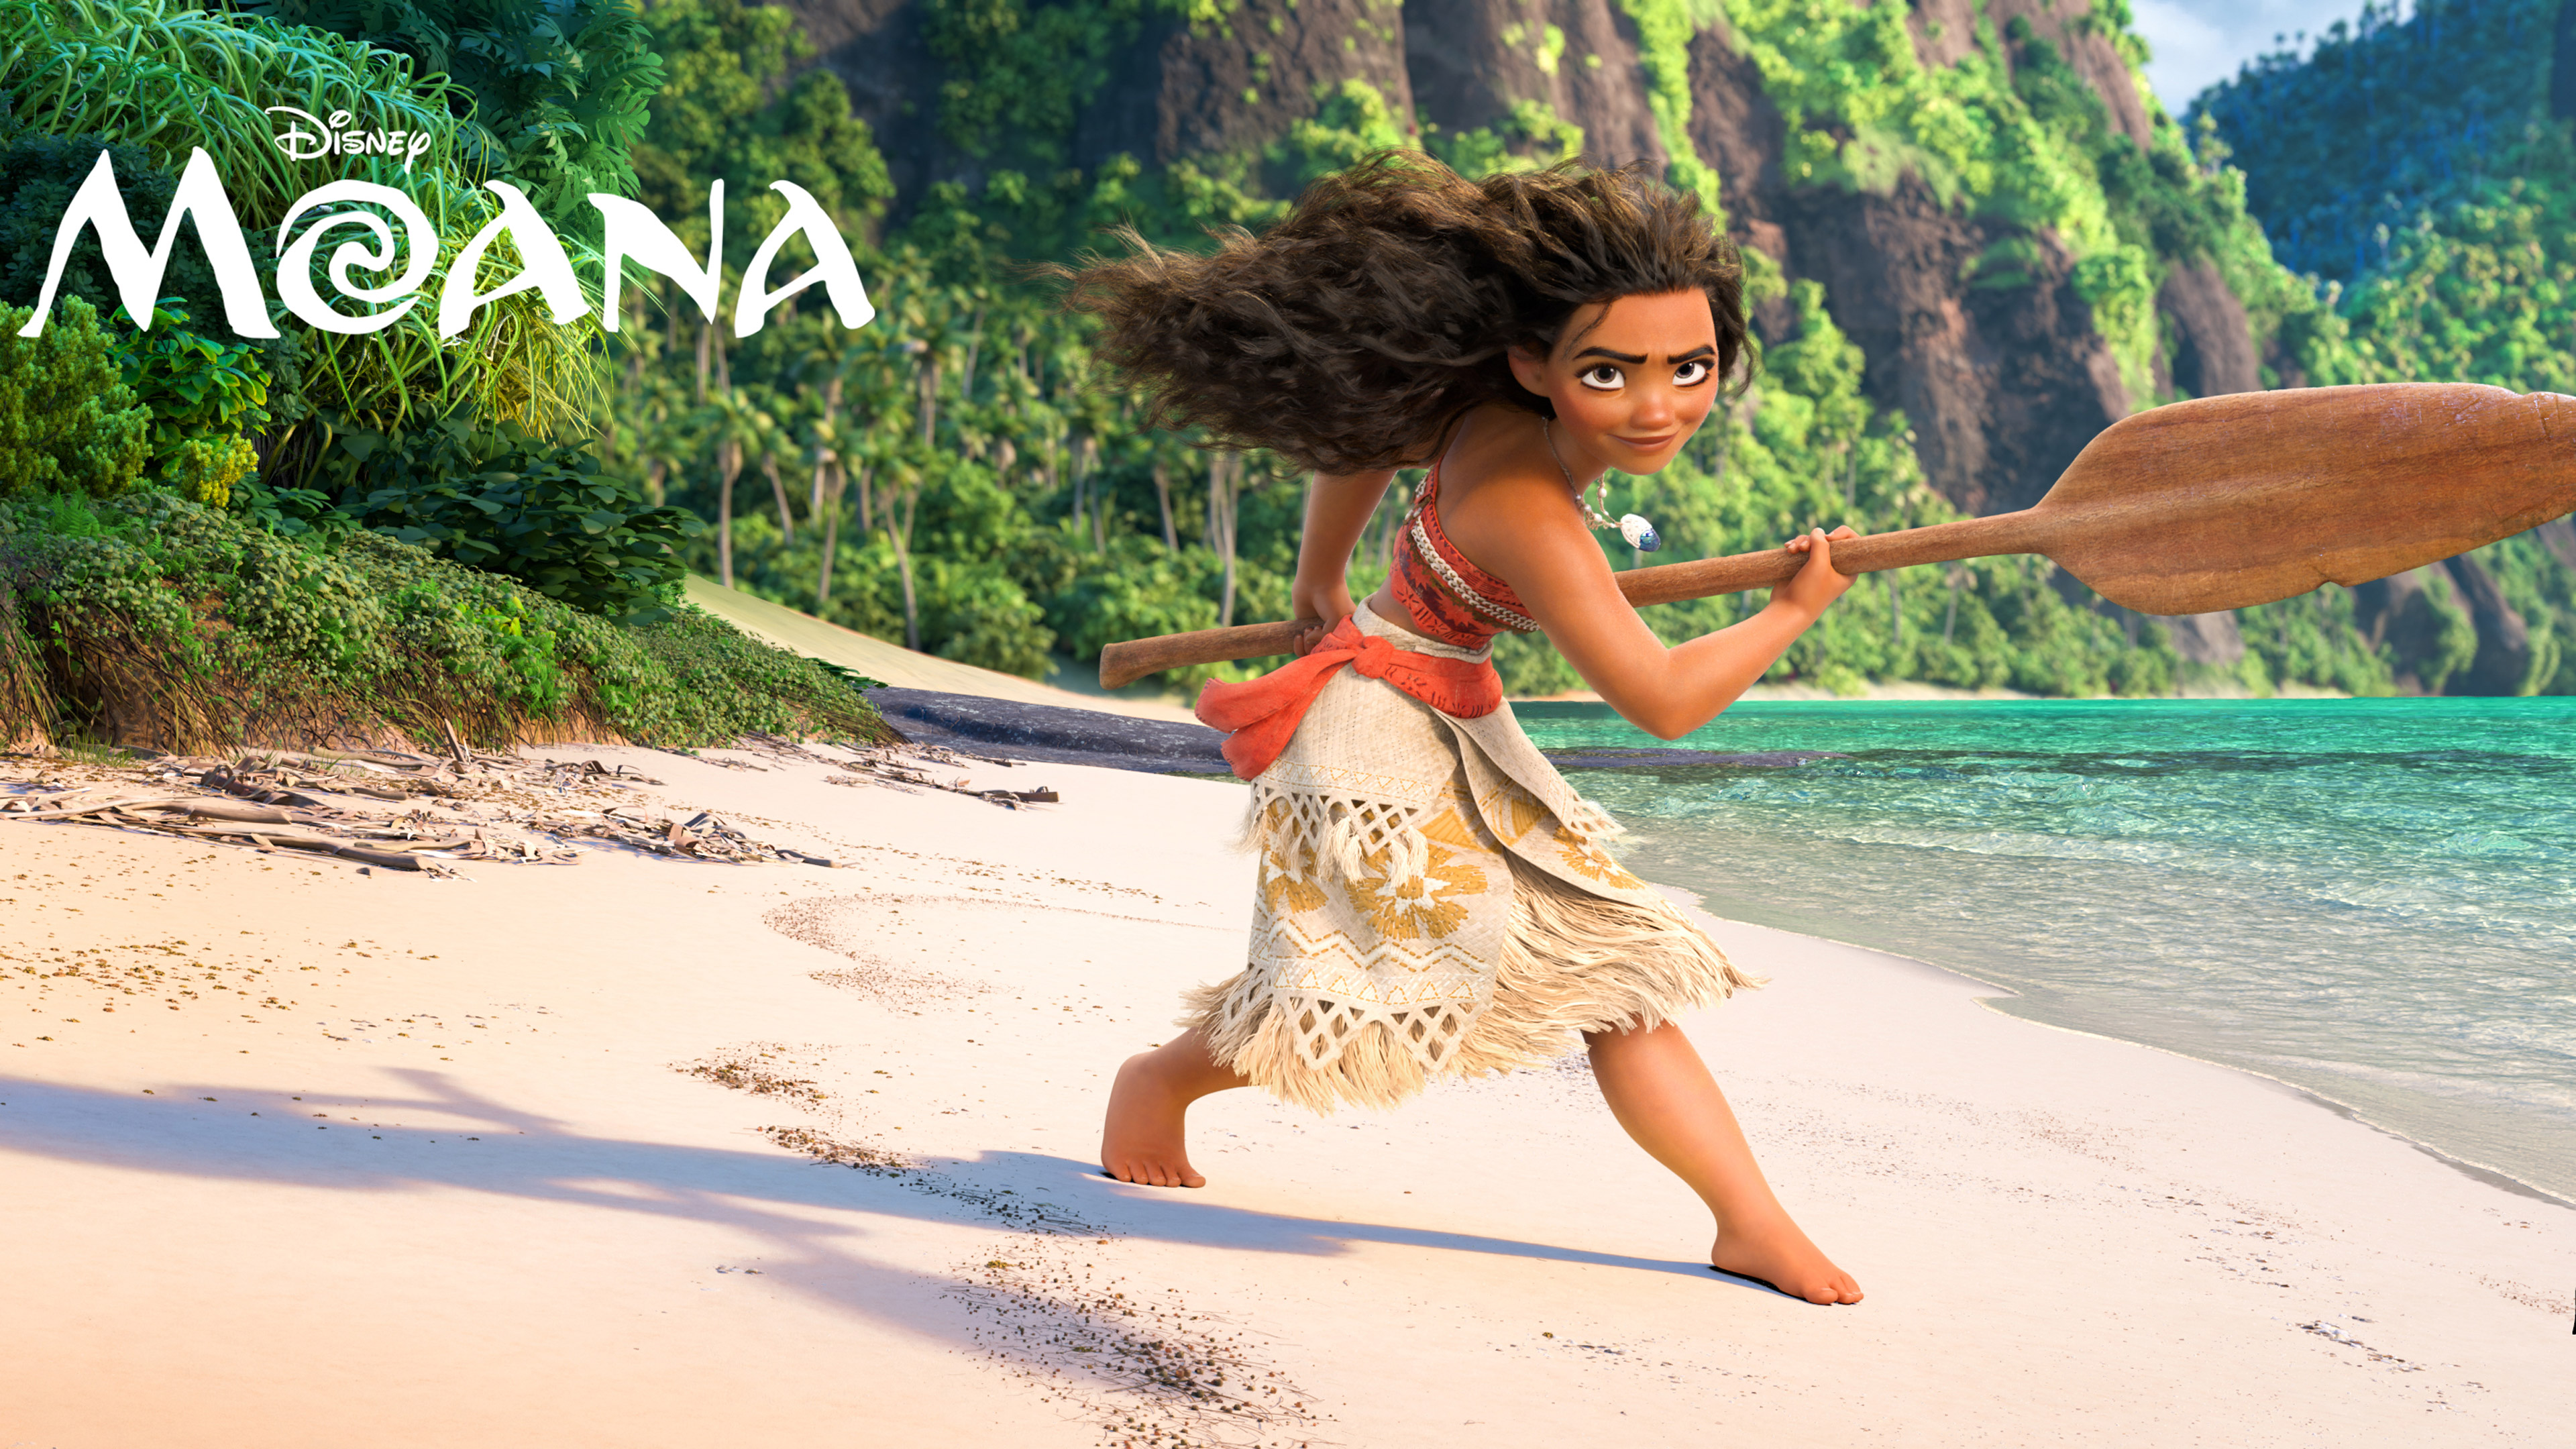 moana movie hd widescreen wallpaper 185